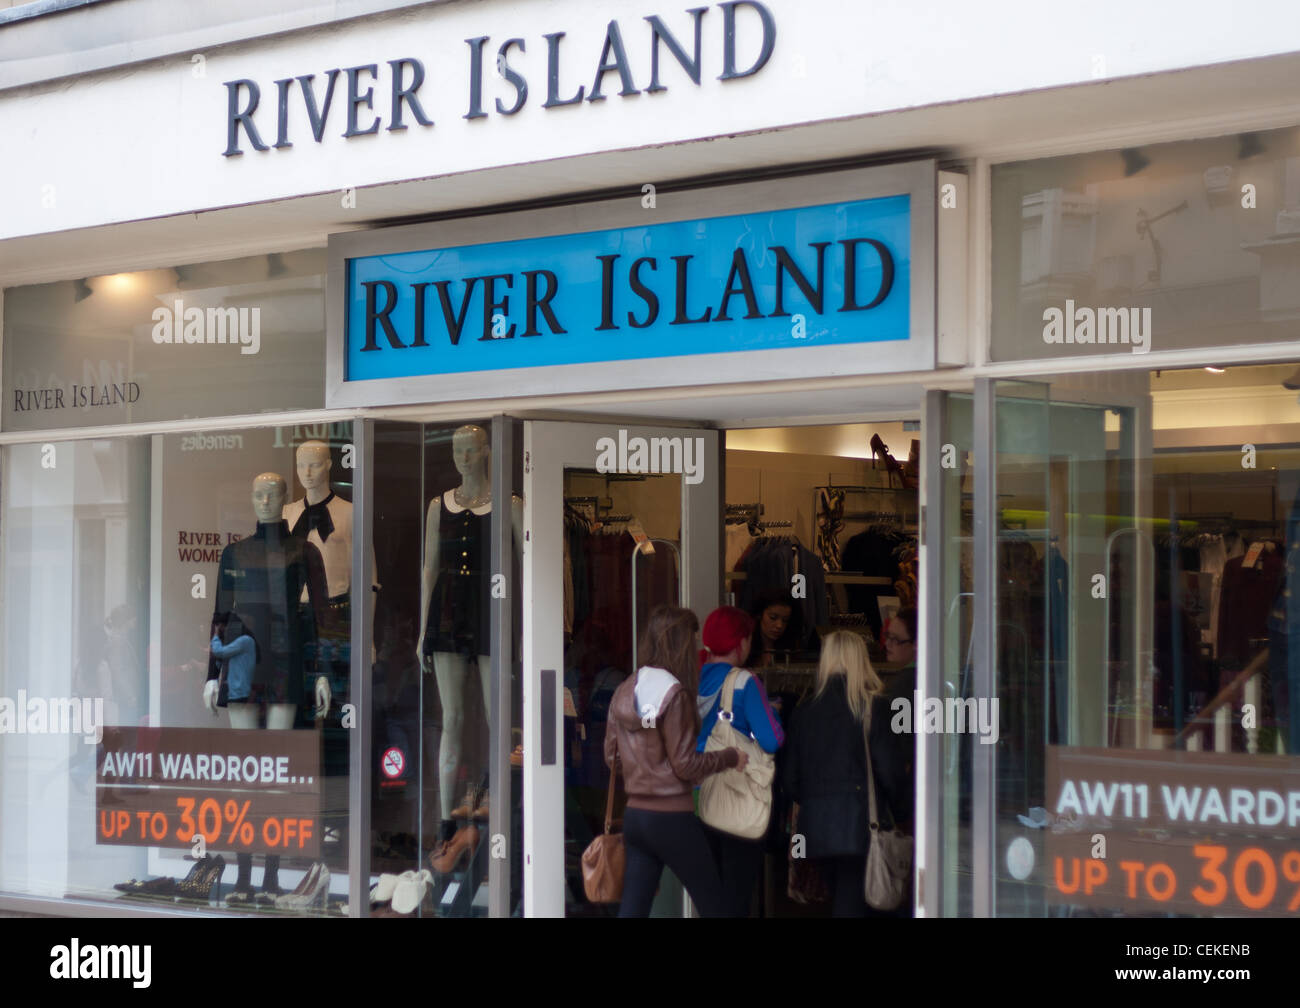 River Island High Street Retail Shop Selling Brand Clothes That Are In With The Current Fashion Trends